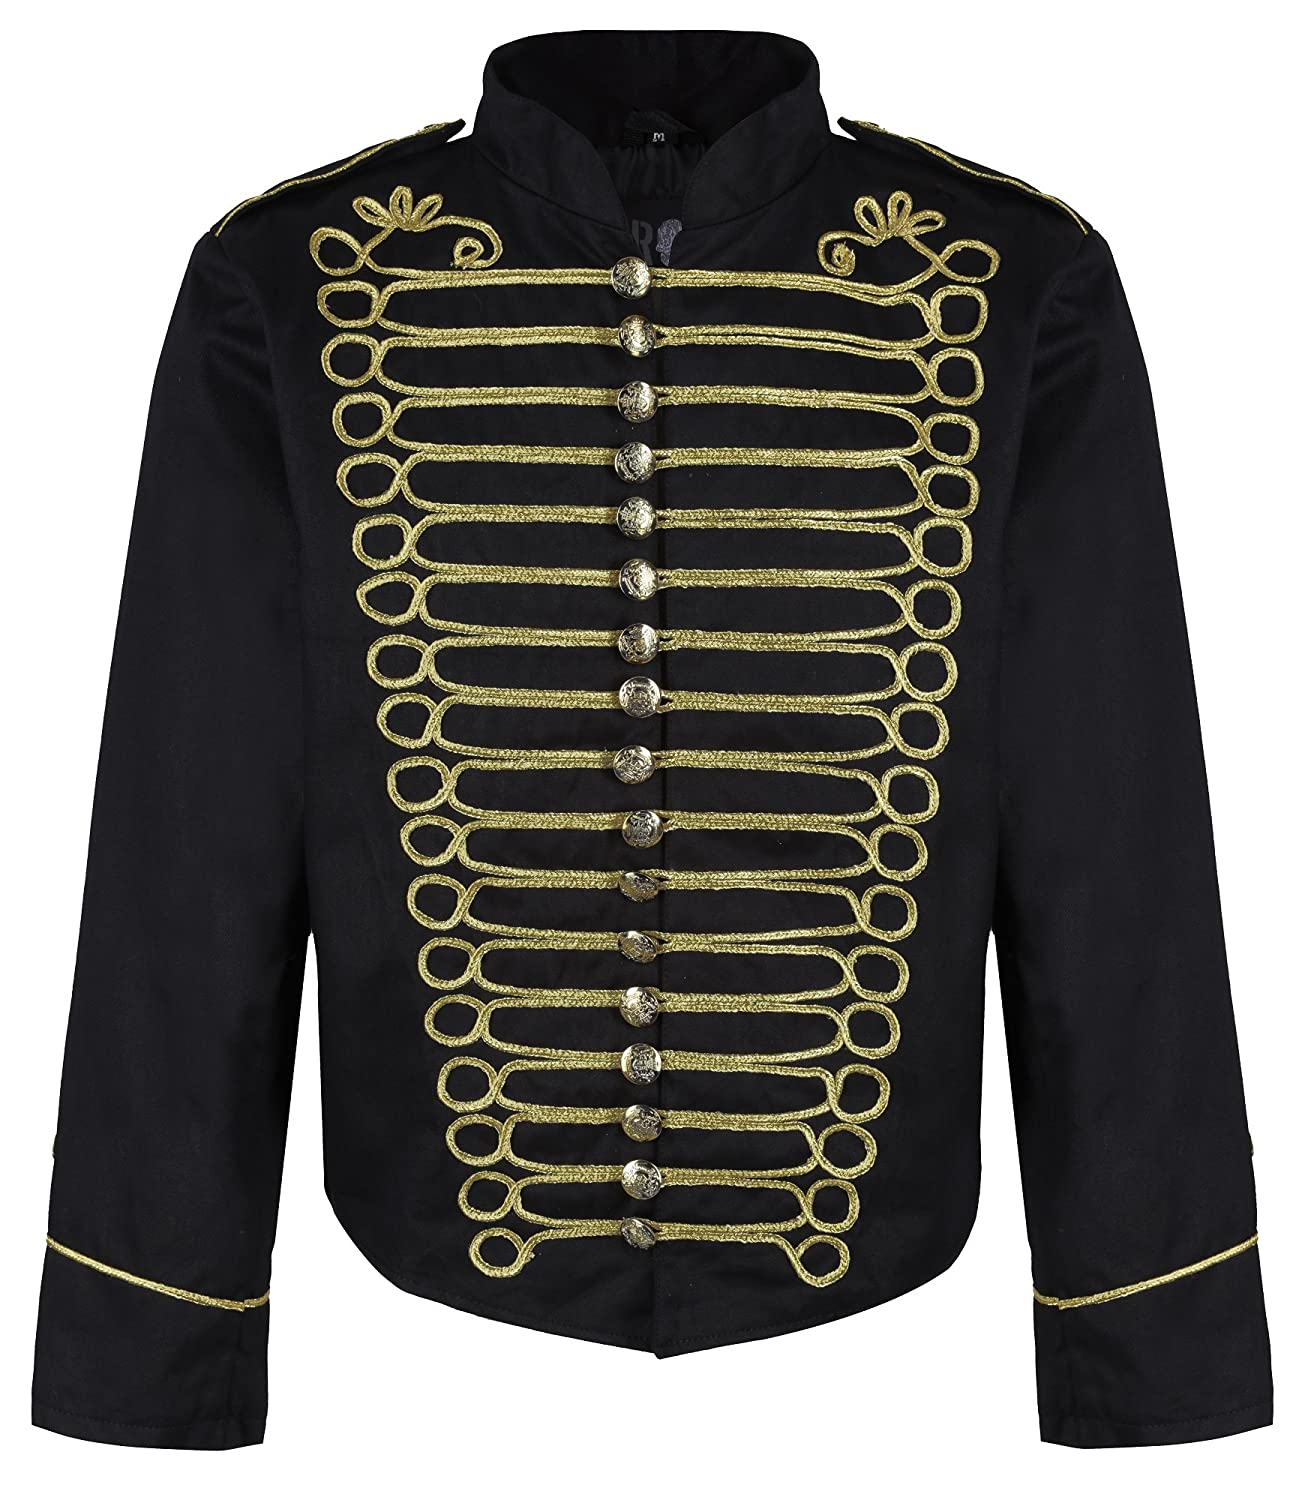 60s 70s Men's Jackets & Sweaters Ro Rox Mens Punk Officer Military Drummer Parade Jacket $59.99 AT vintagedancer.com